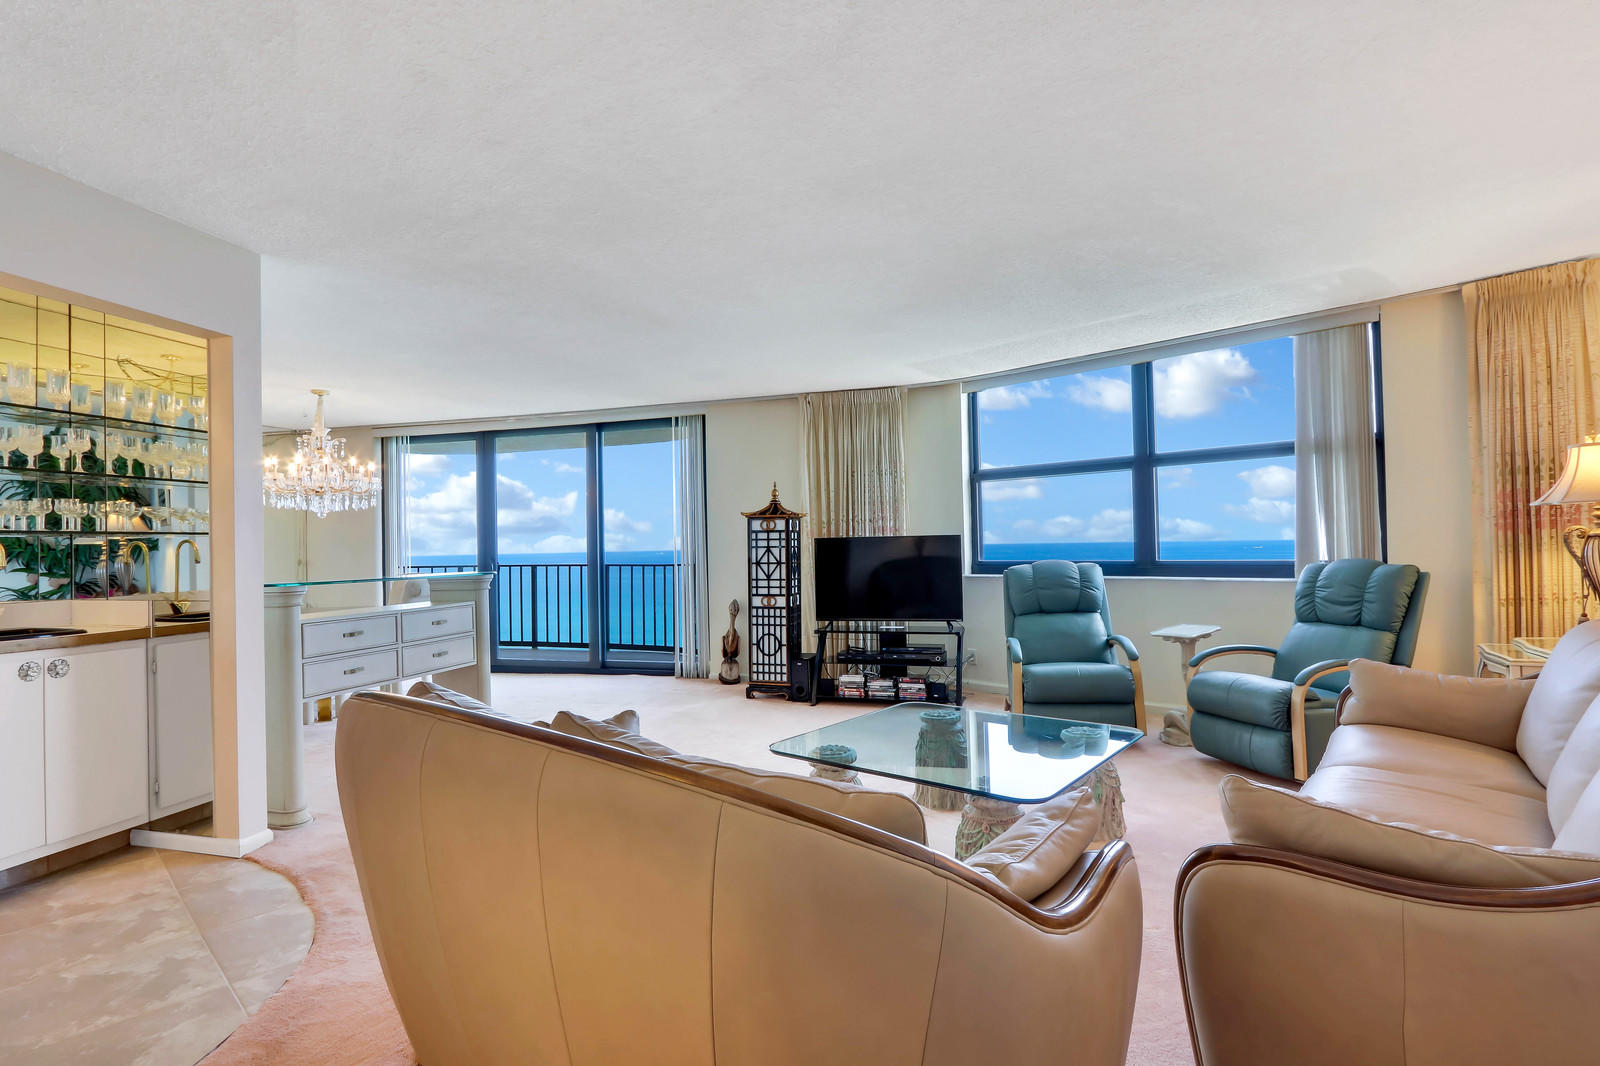 New Home for sale at 5420 Ocean Drive in Singer Island